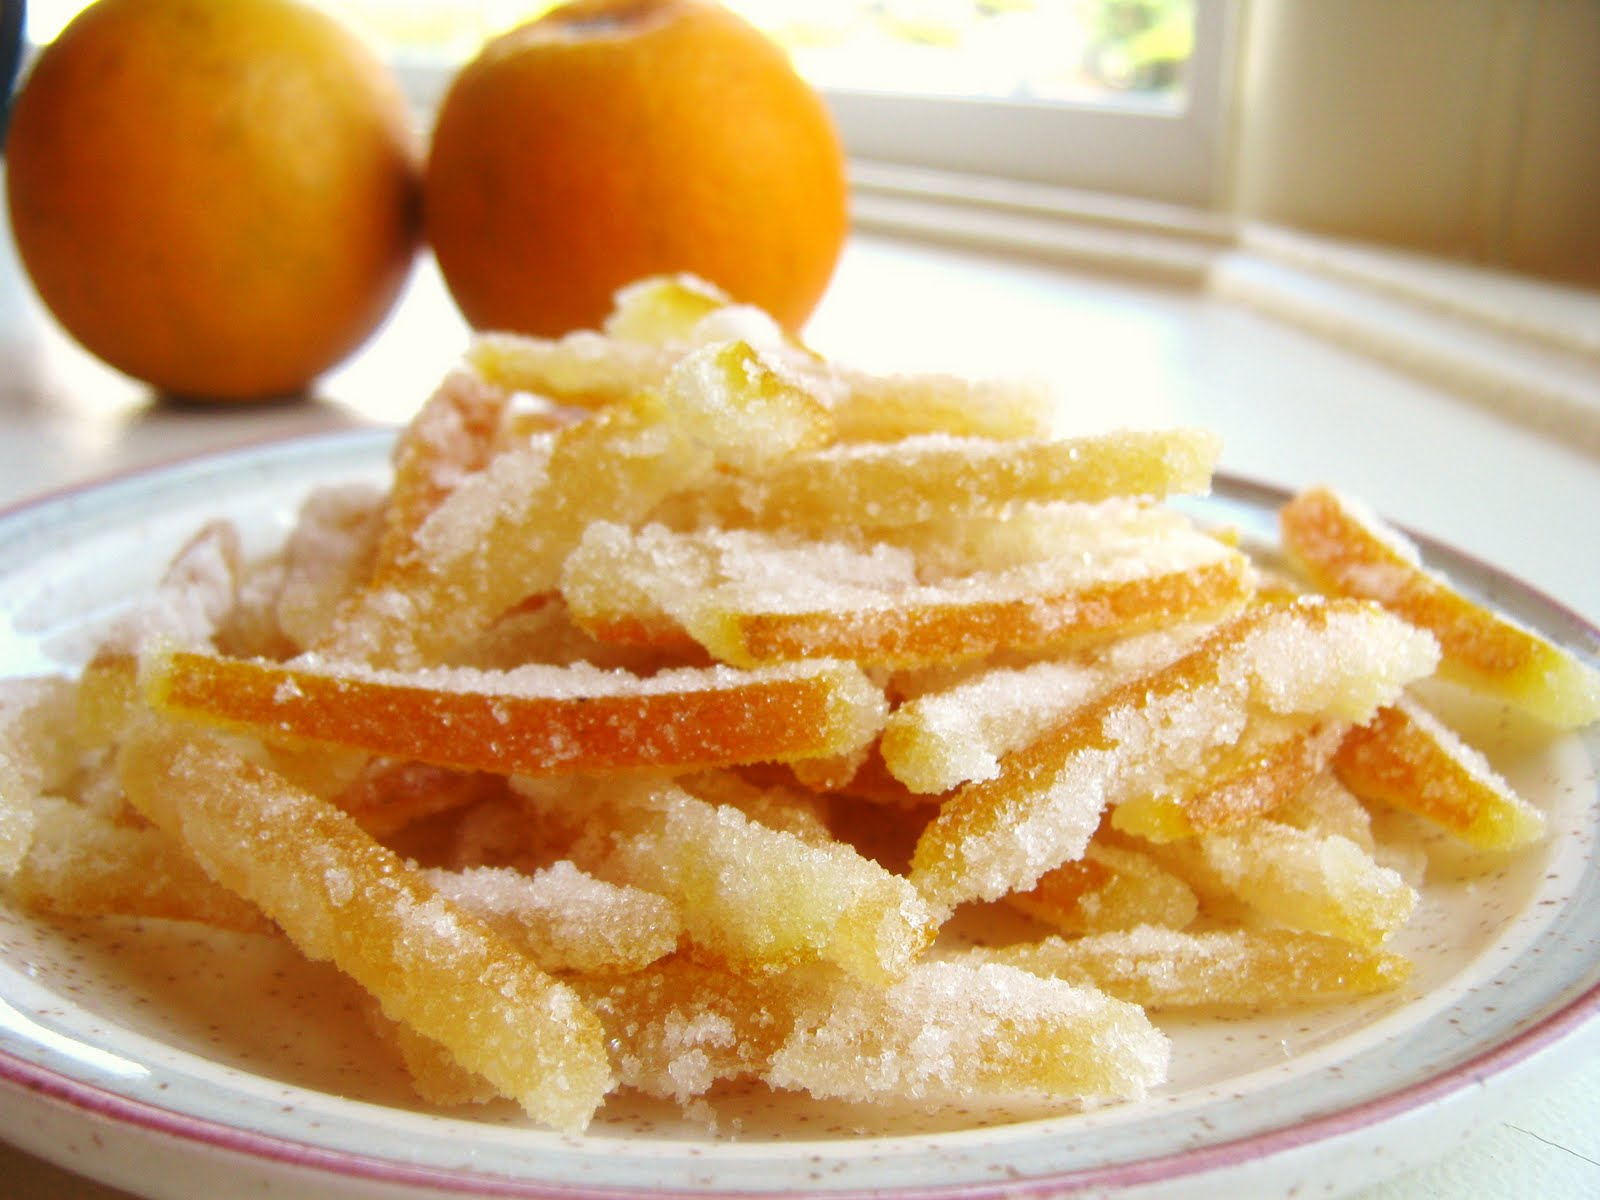 Baking and Mistaking: Candied Orange Peel